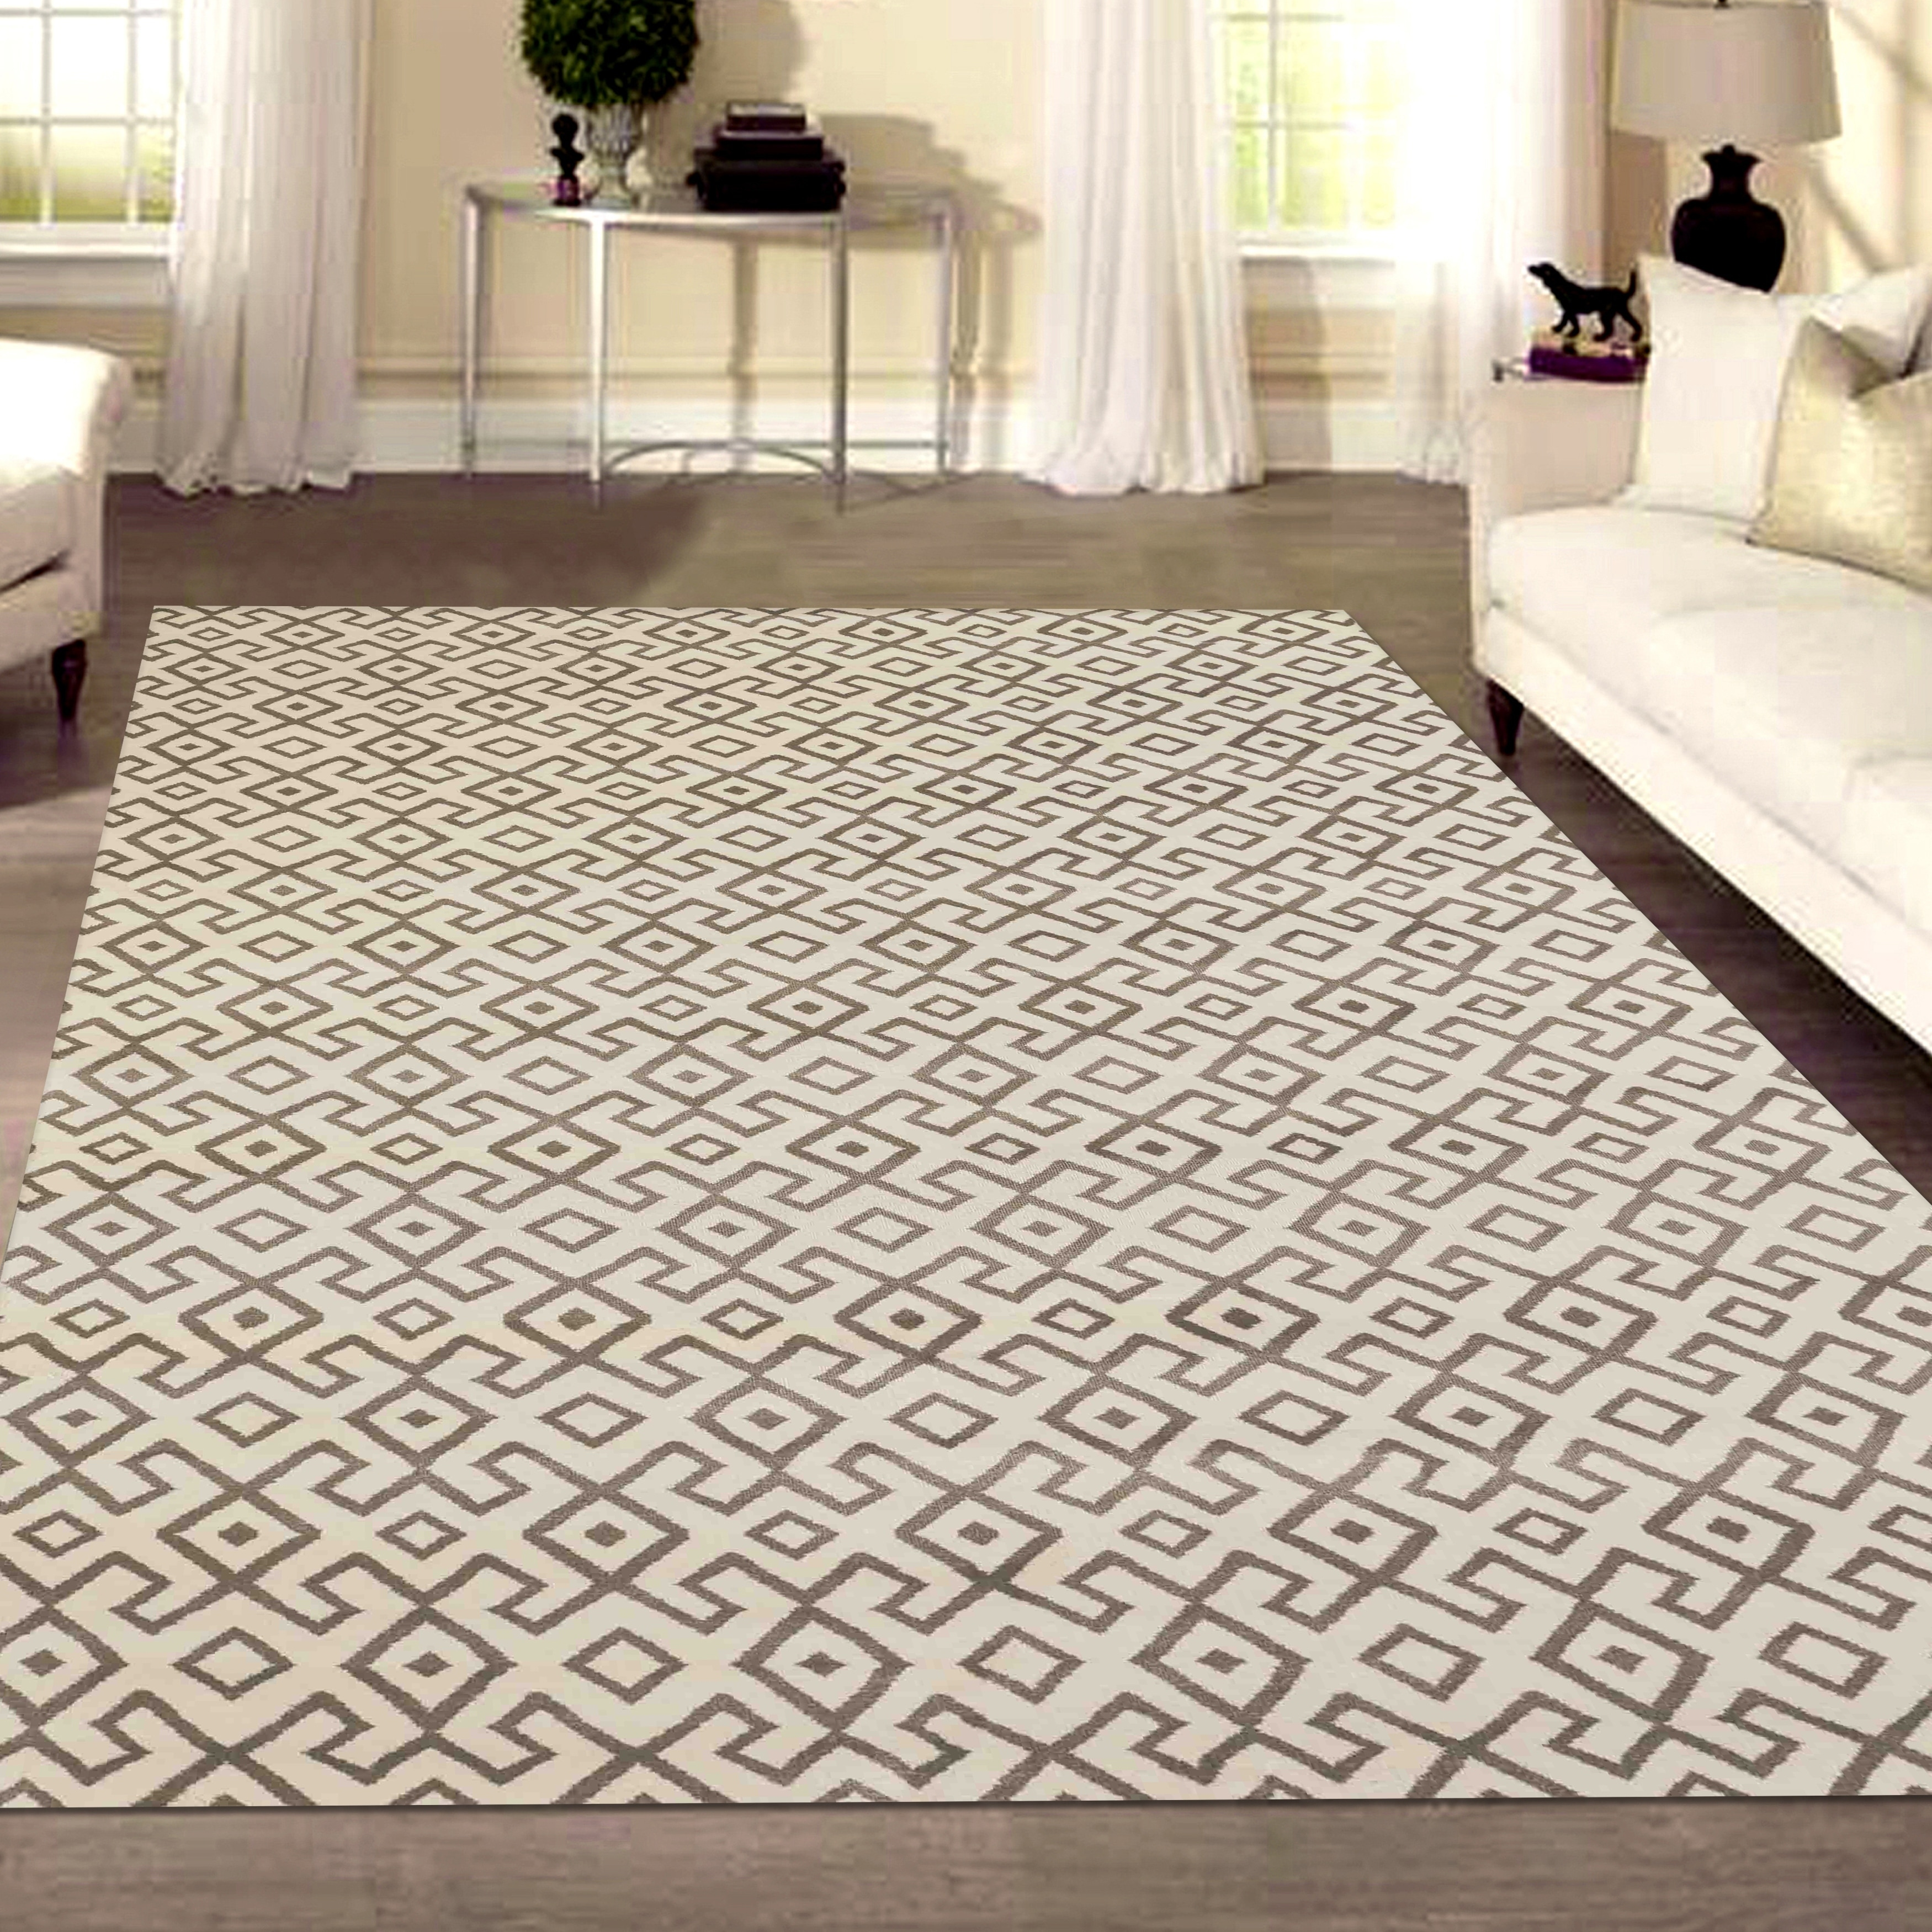 Bronte Disc Area Rug - 710 x 106 (710 x 106 - Ivory)